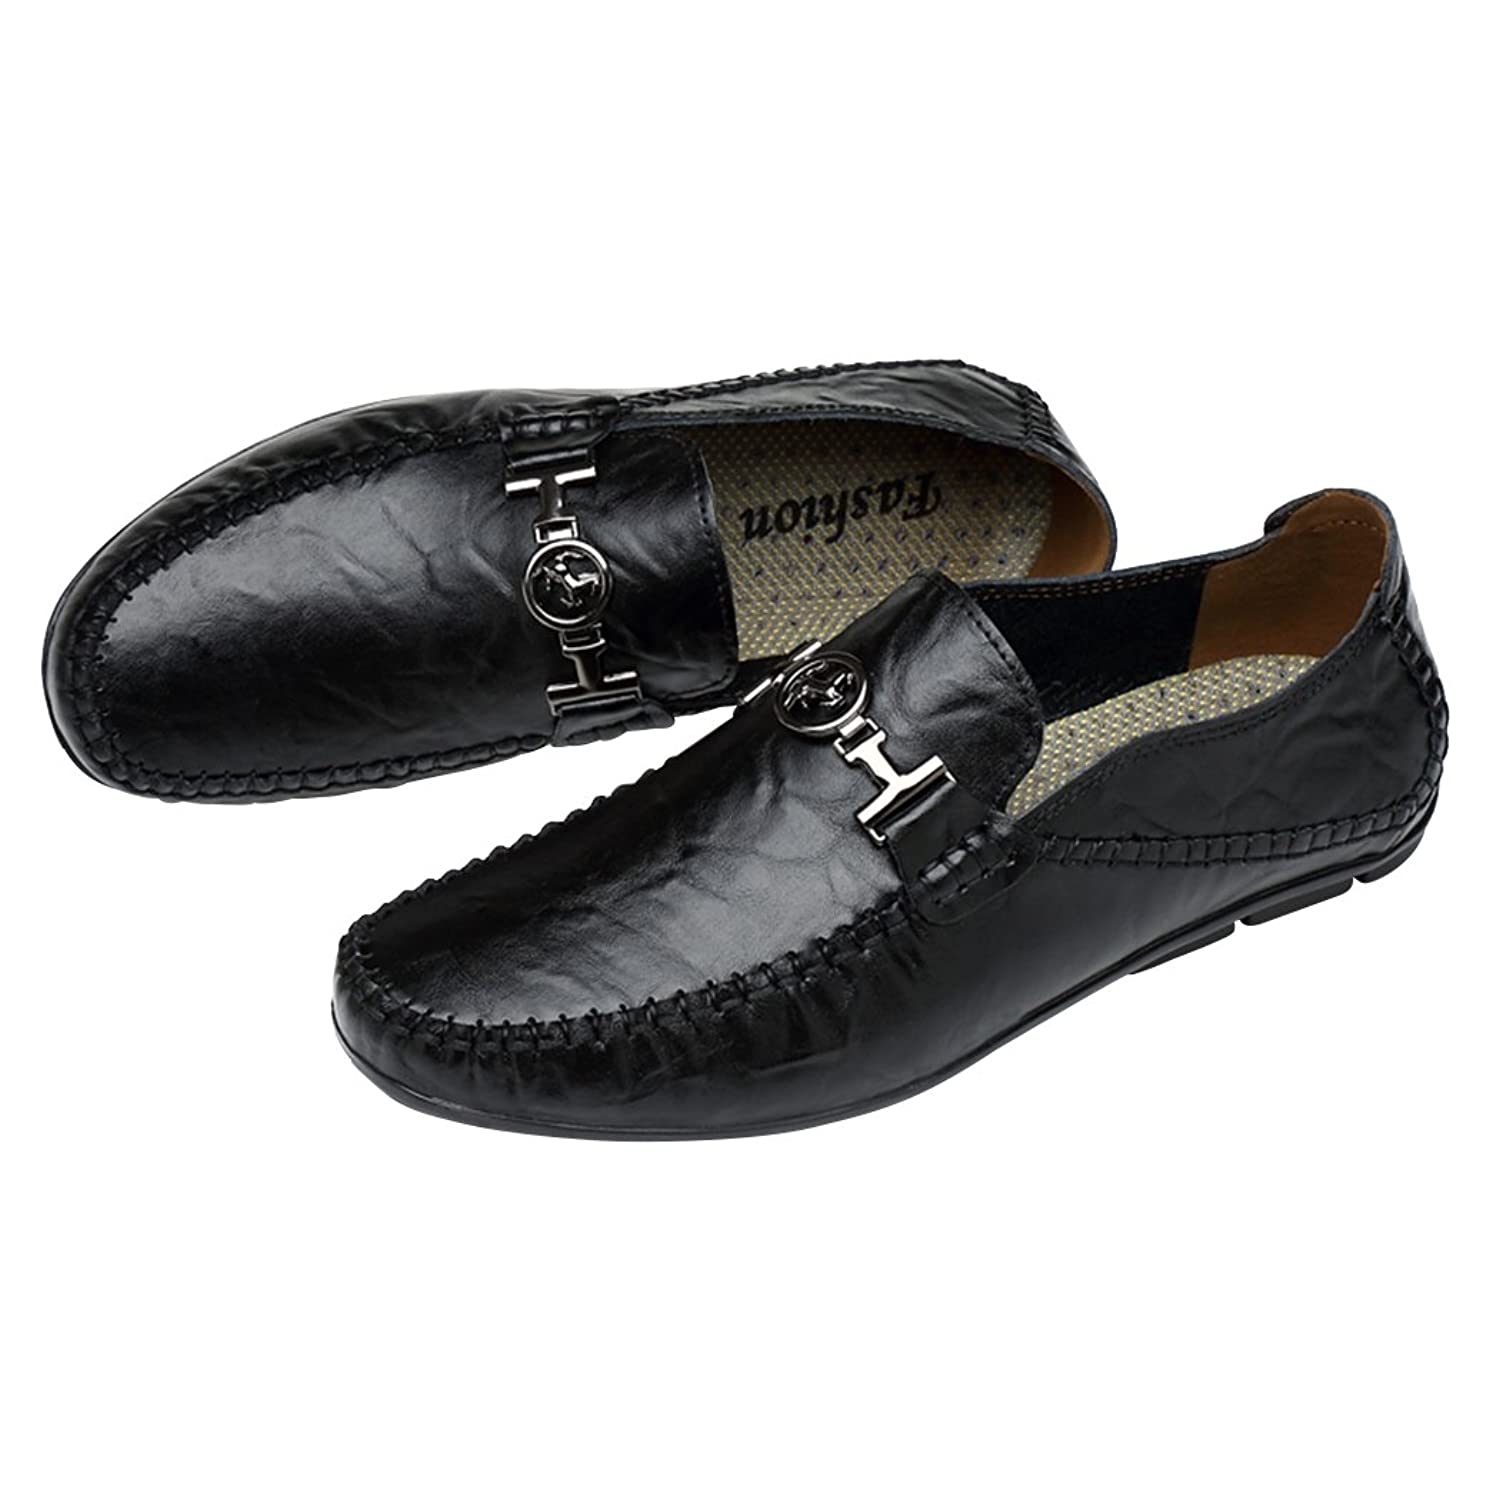 Snowman Lee Men's Premium Leather Loafers Fashion Wrinkle Pattern Casual  Slip-on Driving Shoes: Amazon.ca: Shoes & Handbags